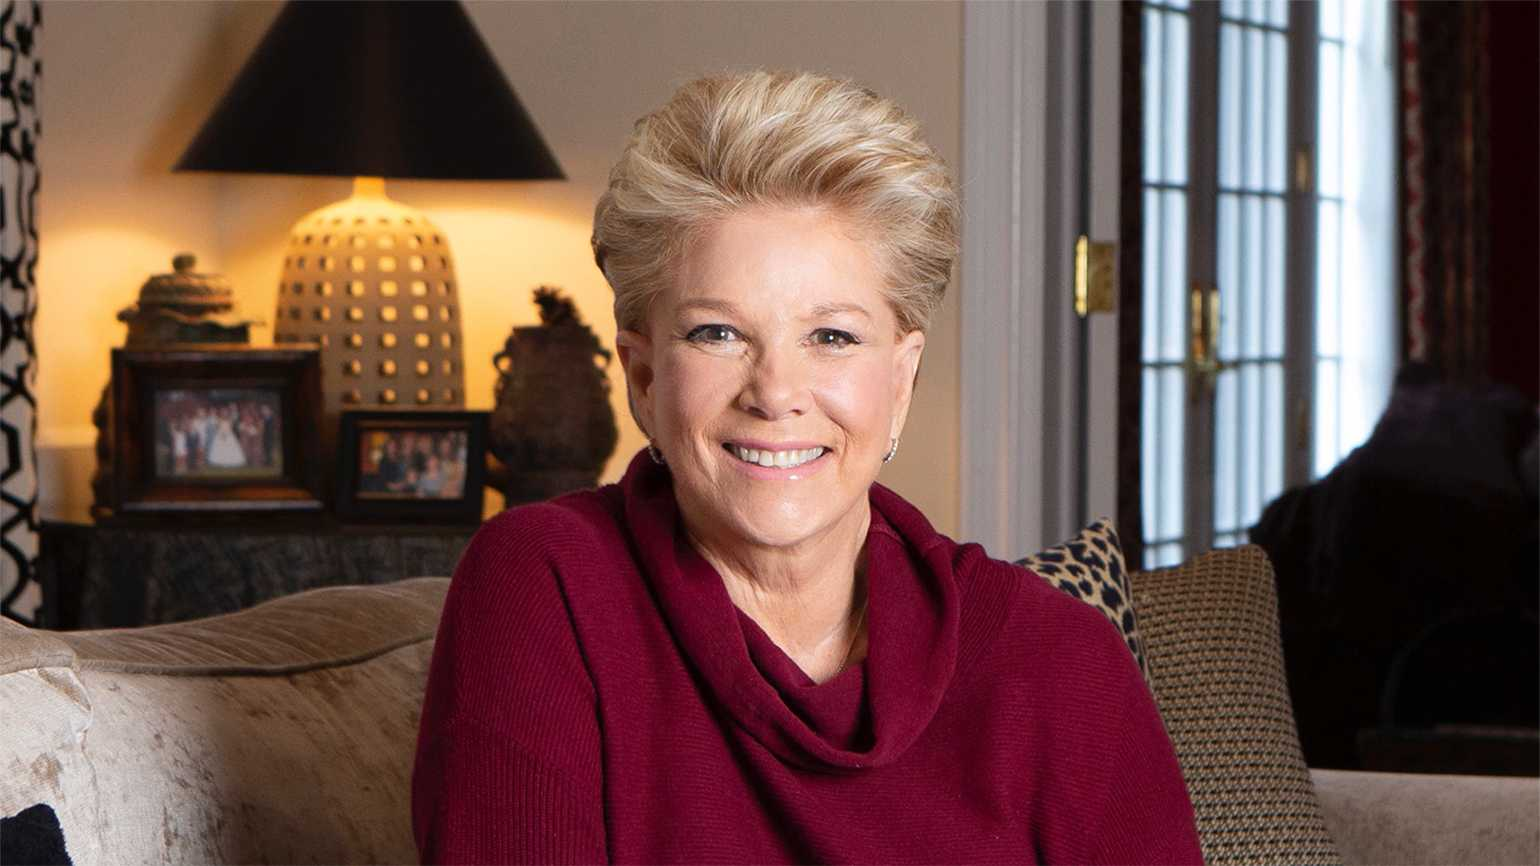 Journalist and author Joan Lunden